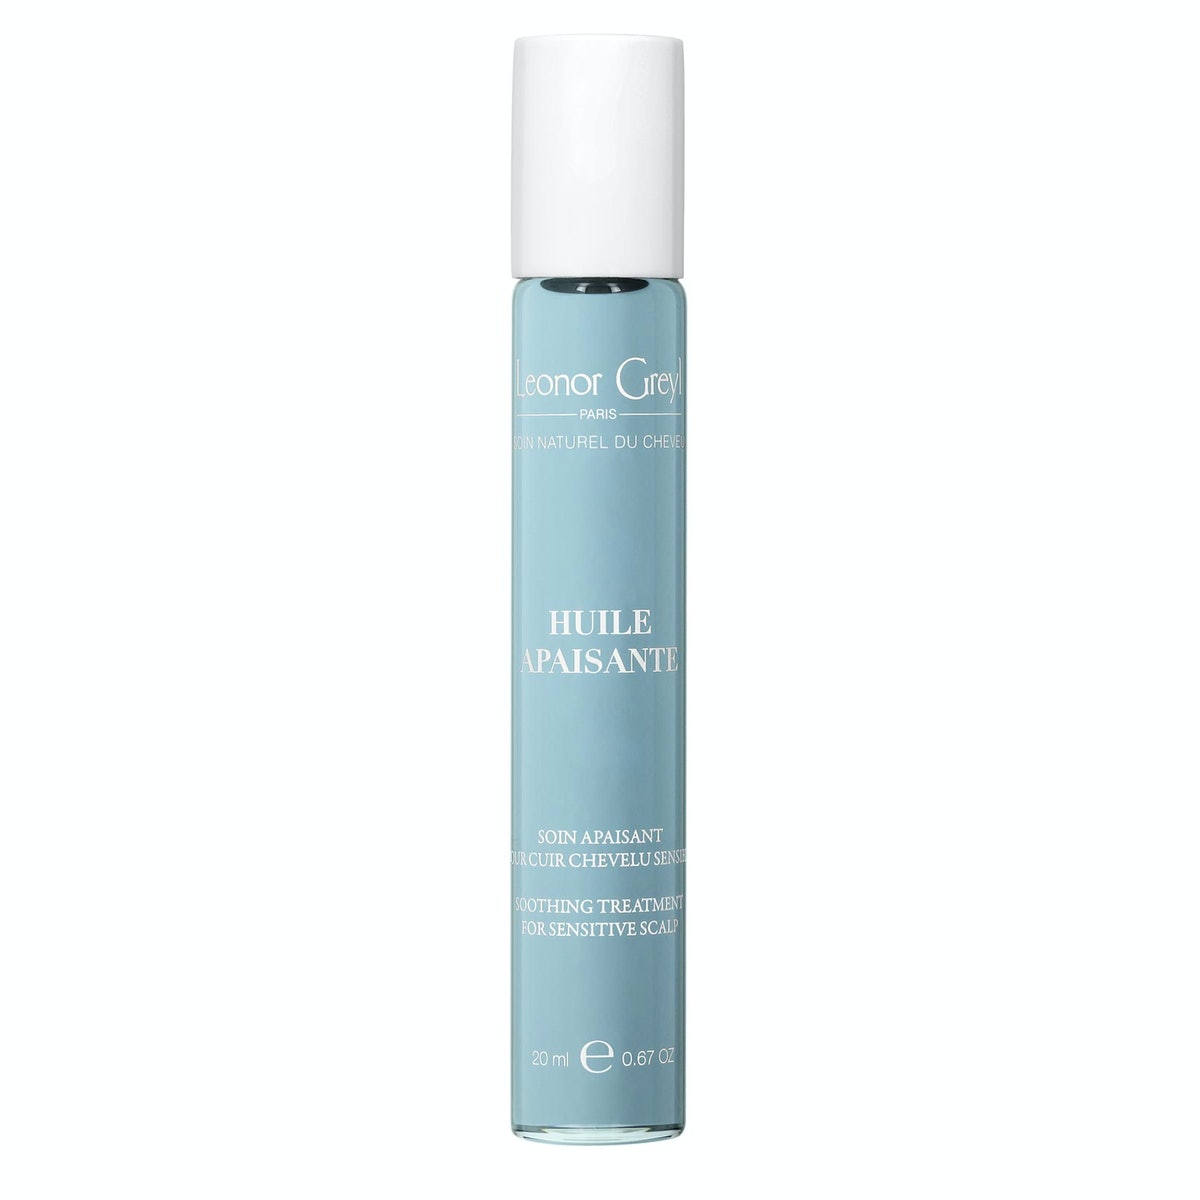 Huile Apaisante Soothing Treatment for Sensitive Scalp